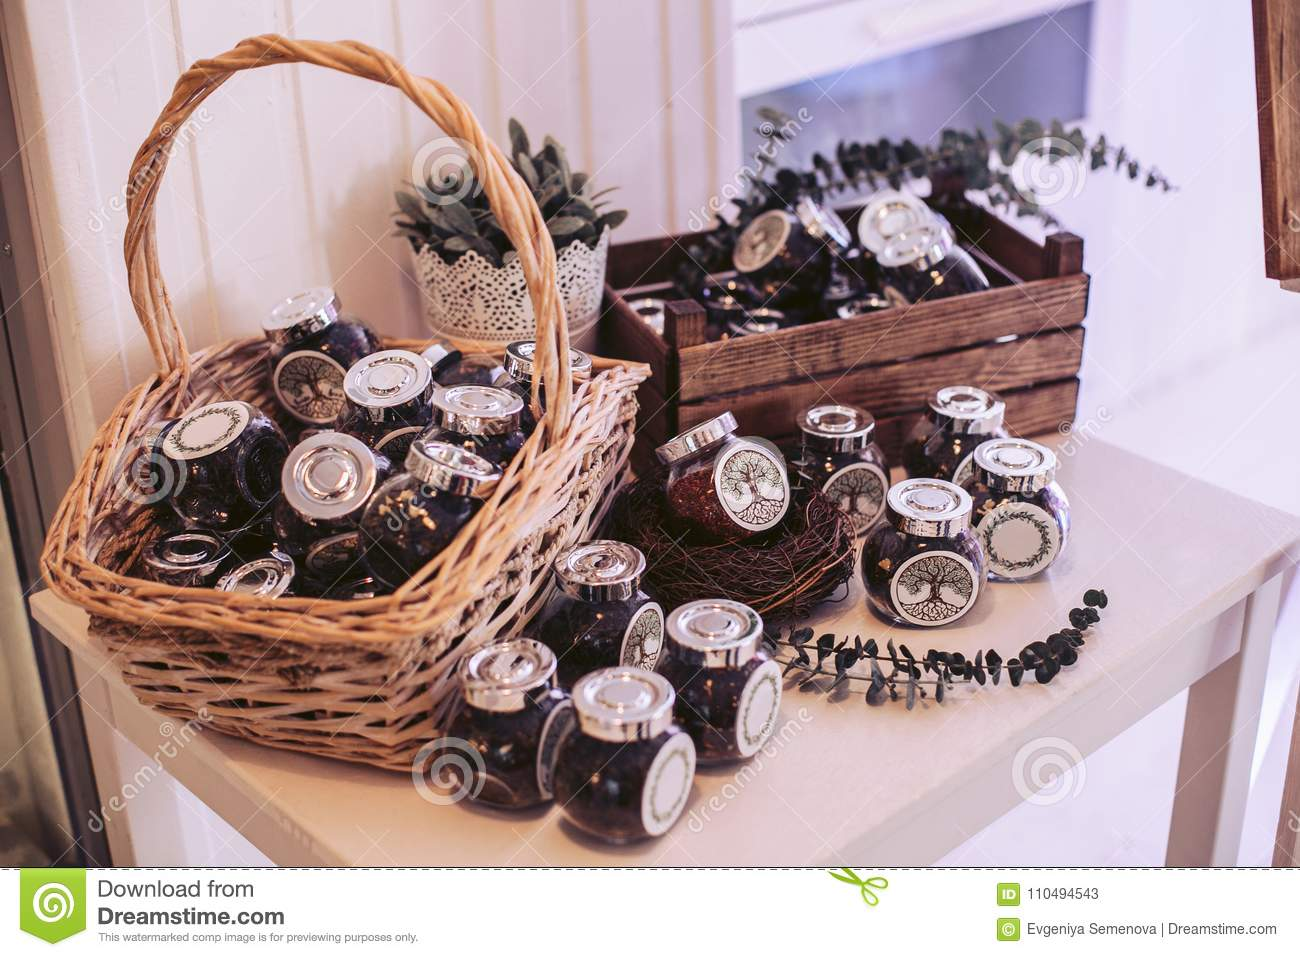 Wicker Basket And Box With Glass Jars Filled Decorative Elements